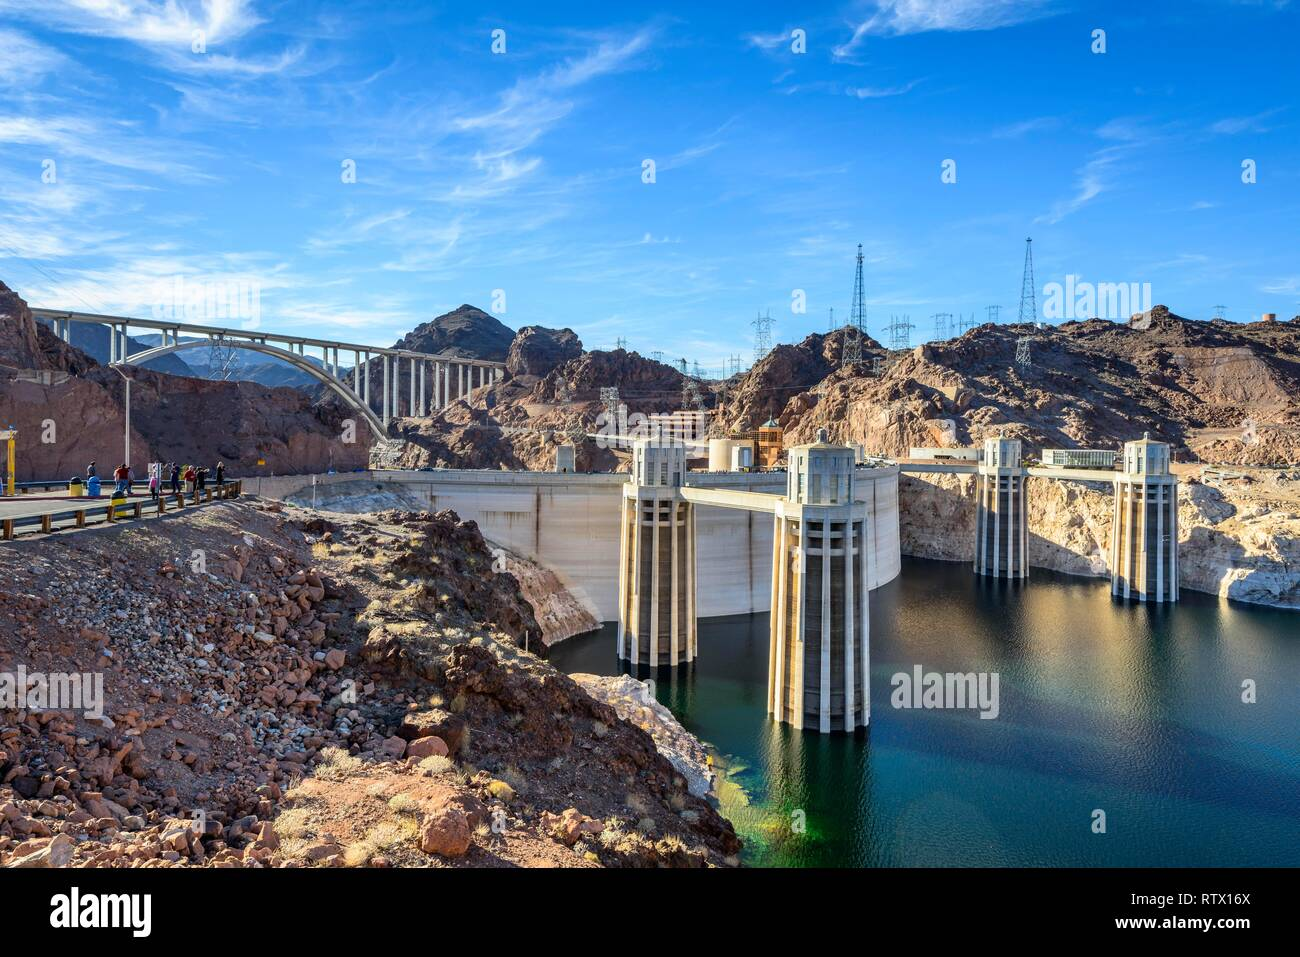 Hoover dam, Hoover Dam, dam, near Las Vegas, the water level has dropped approx. 30 m, Lake Mead, Boulder City Stock Photo